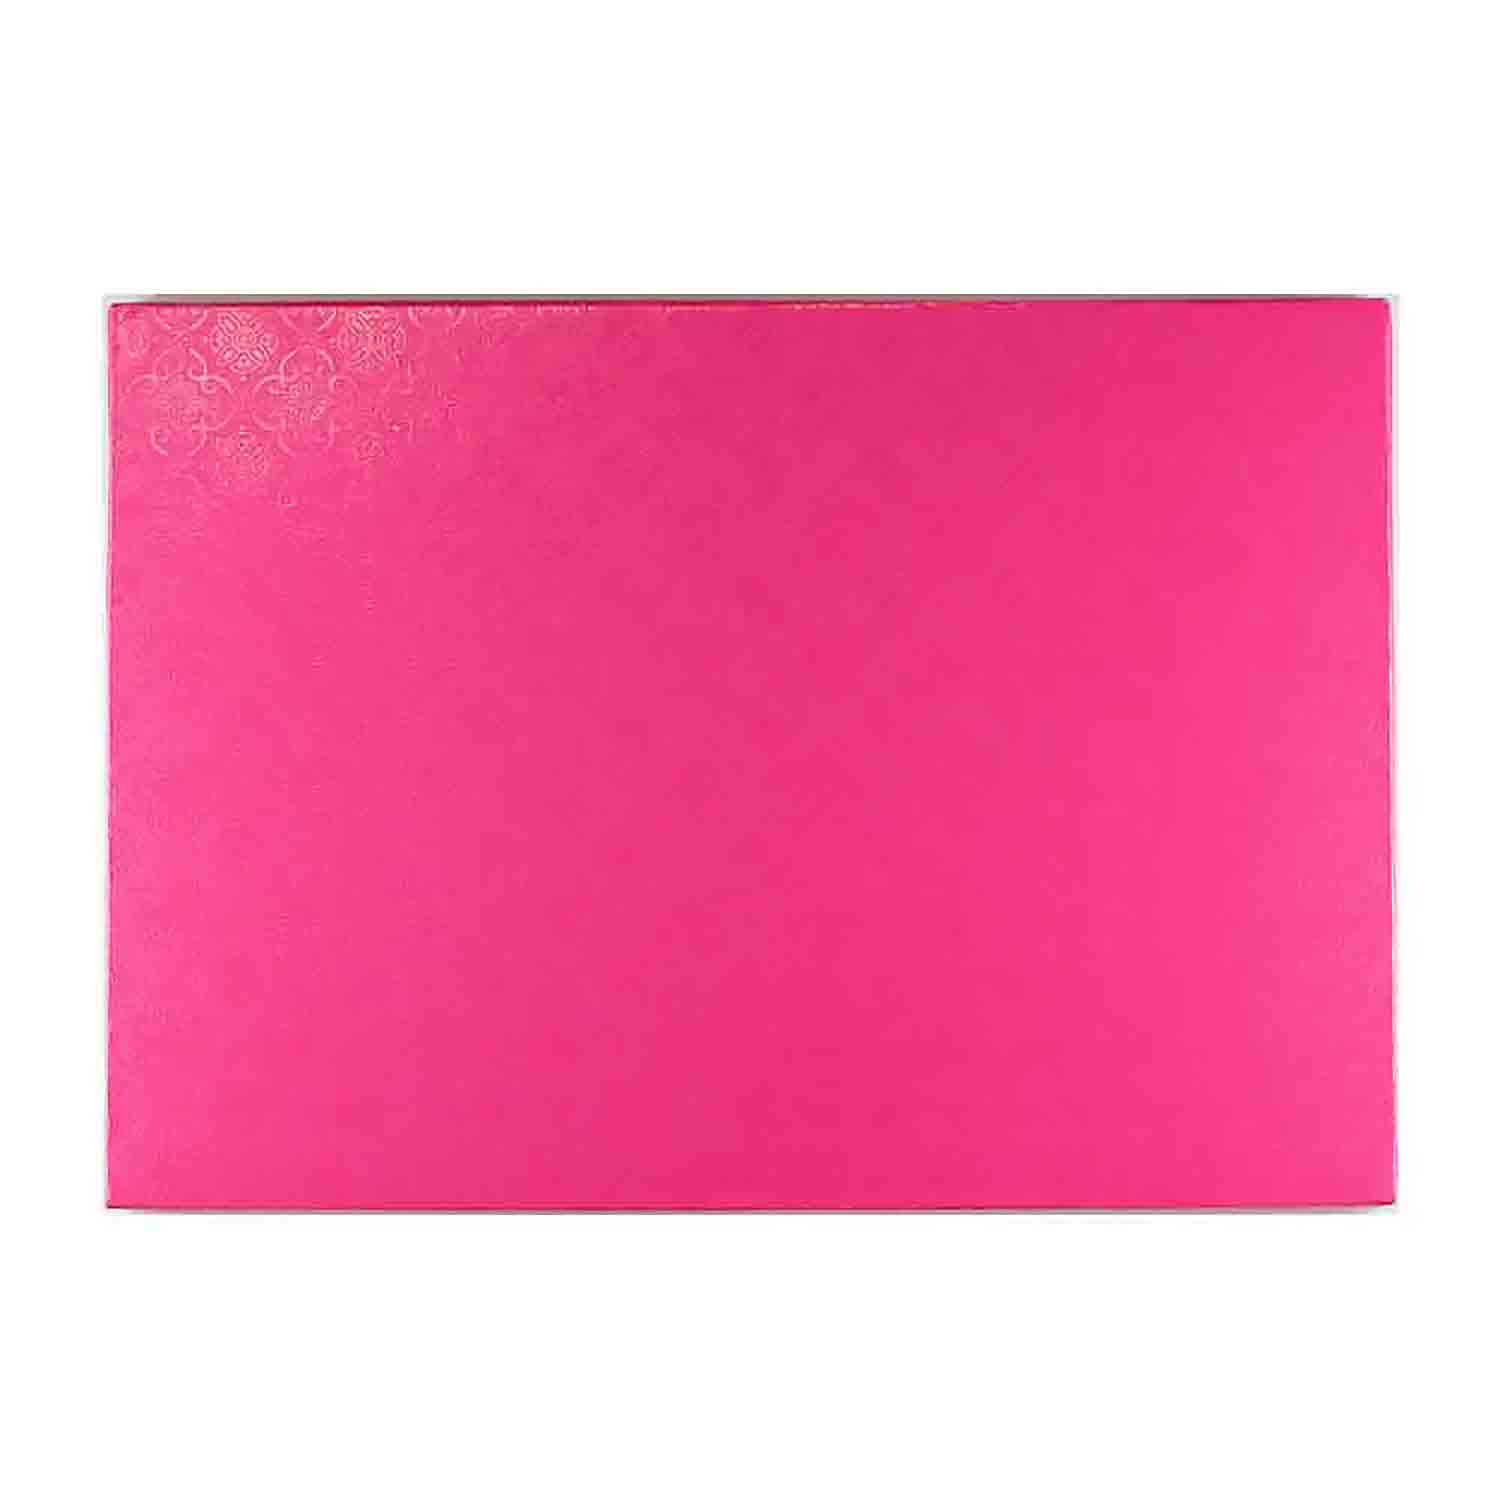 "14"" x 19"" Rectangle Pink Foil Half Sheet Cake Drum"